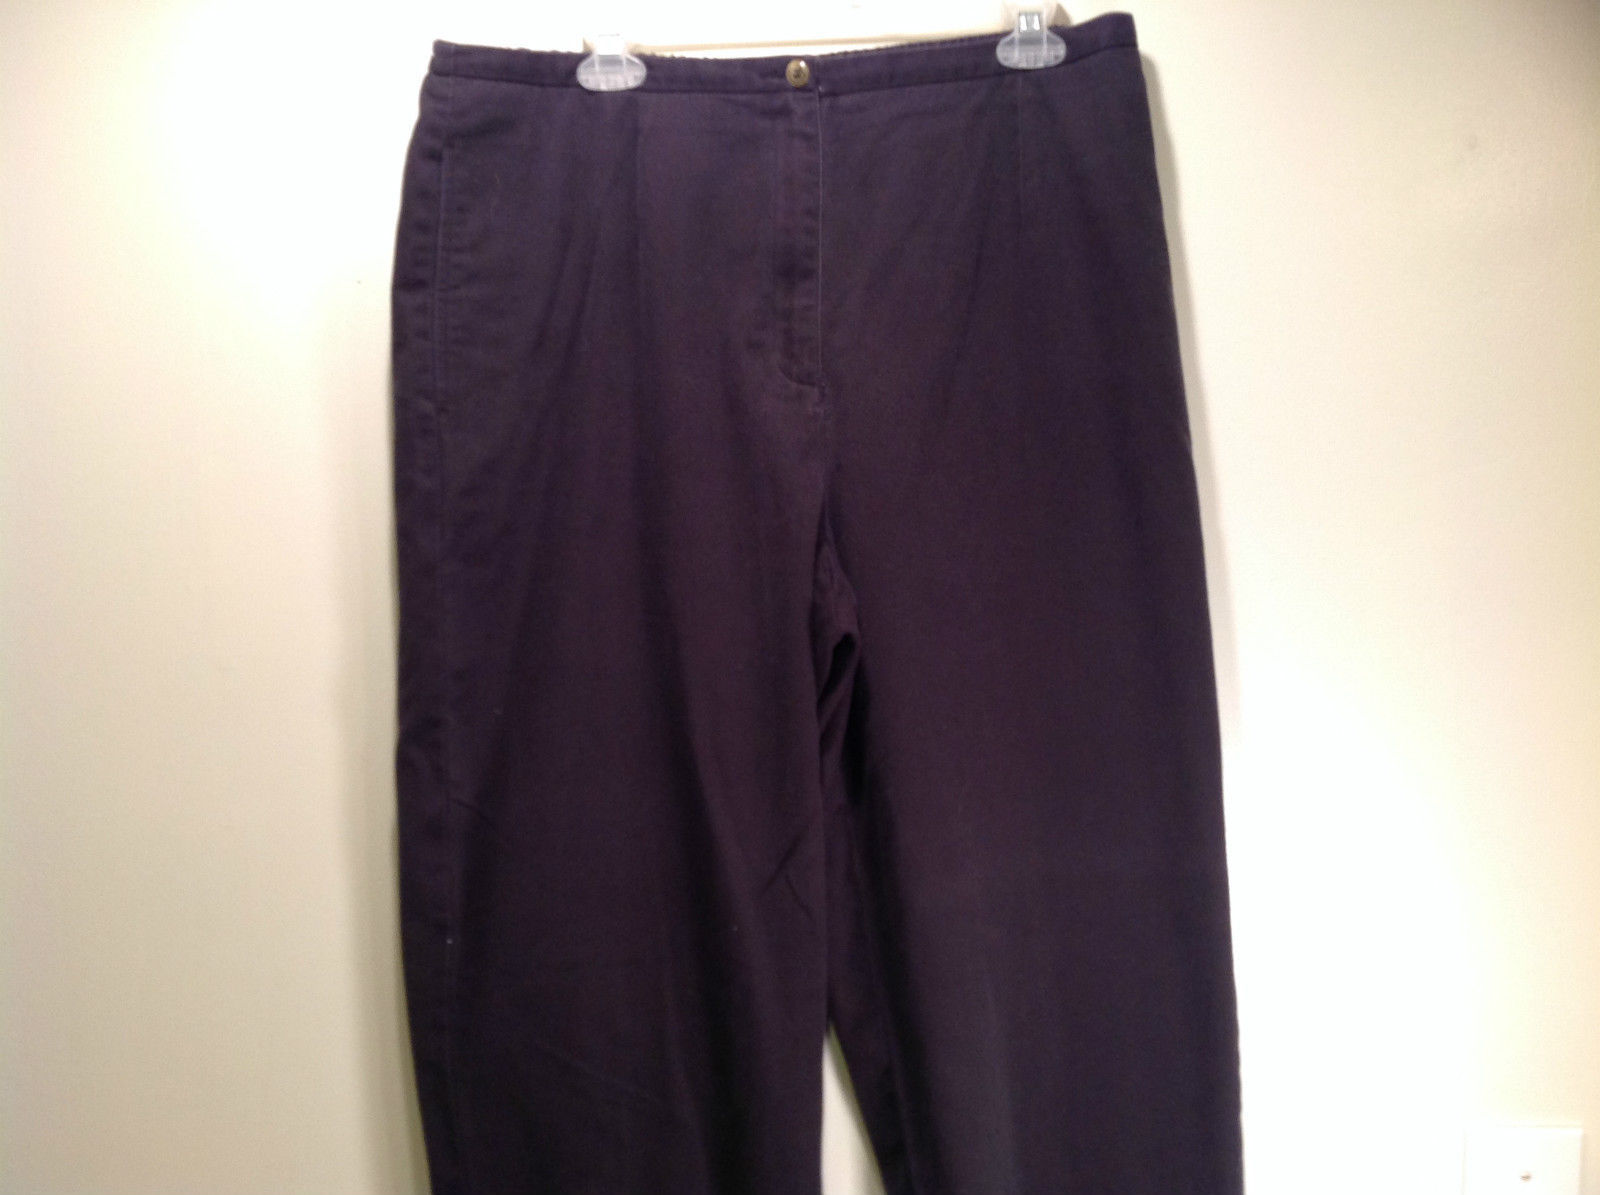 Size 16 Liz Claiborne Charcoal Elastic Waist 100 Percent Cotton Casual Pants